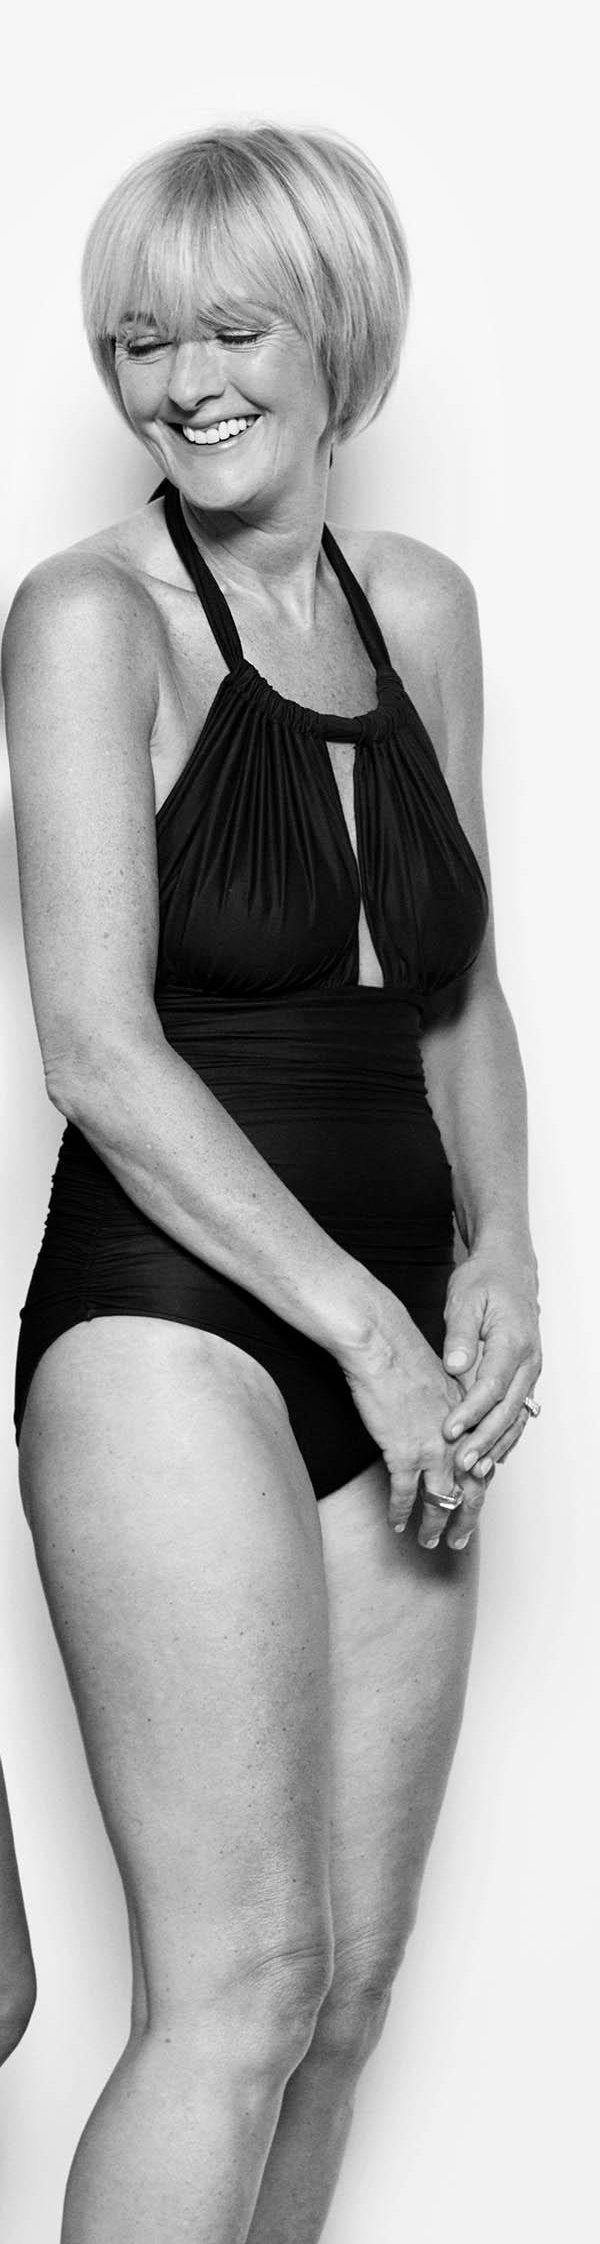 Jane Moore loved the female empowerment aspect of the shoot